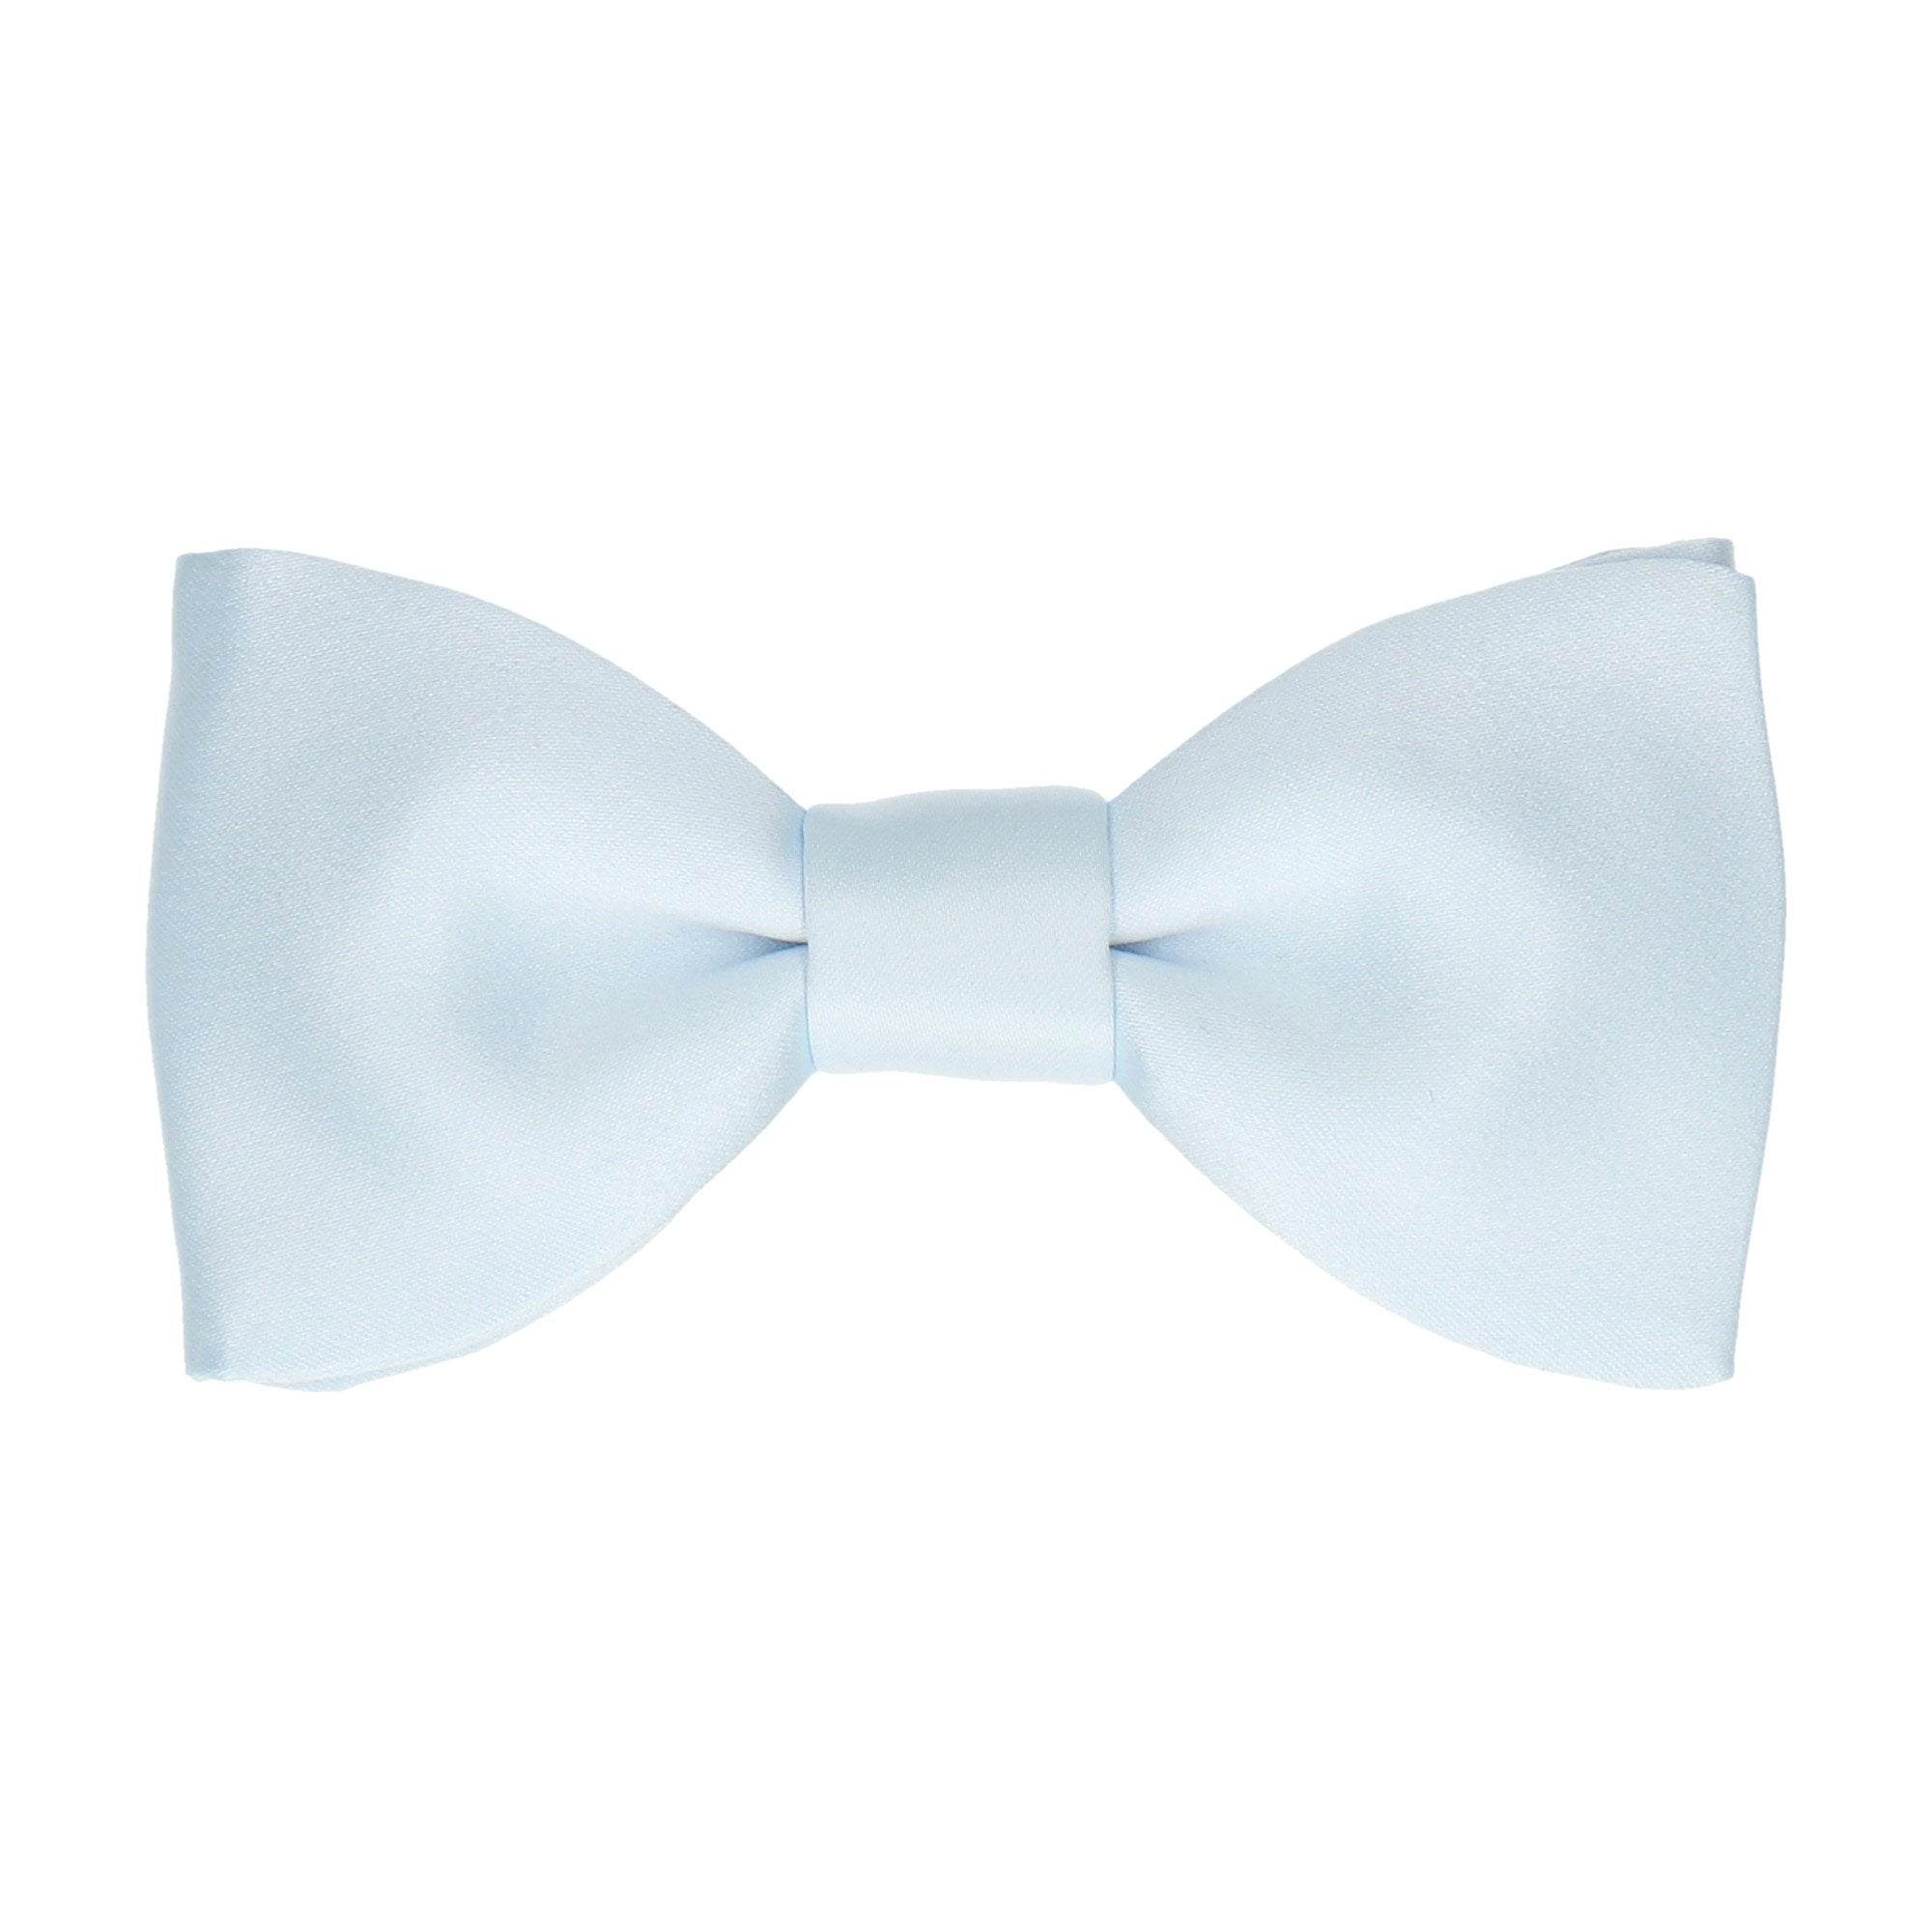 Satin Ice Blue Bow Tie